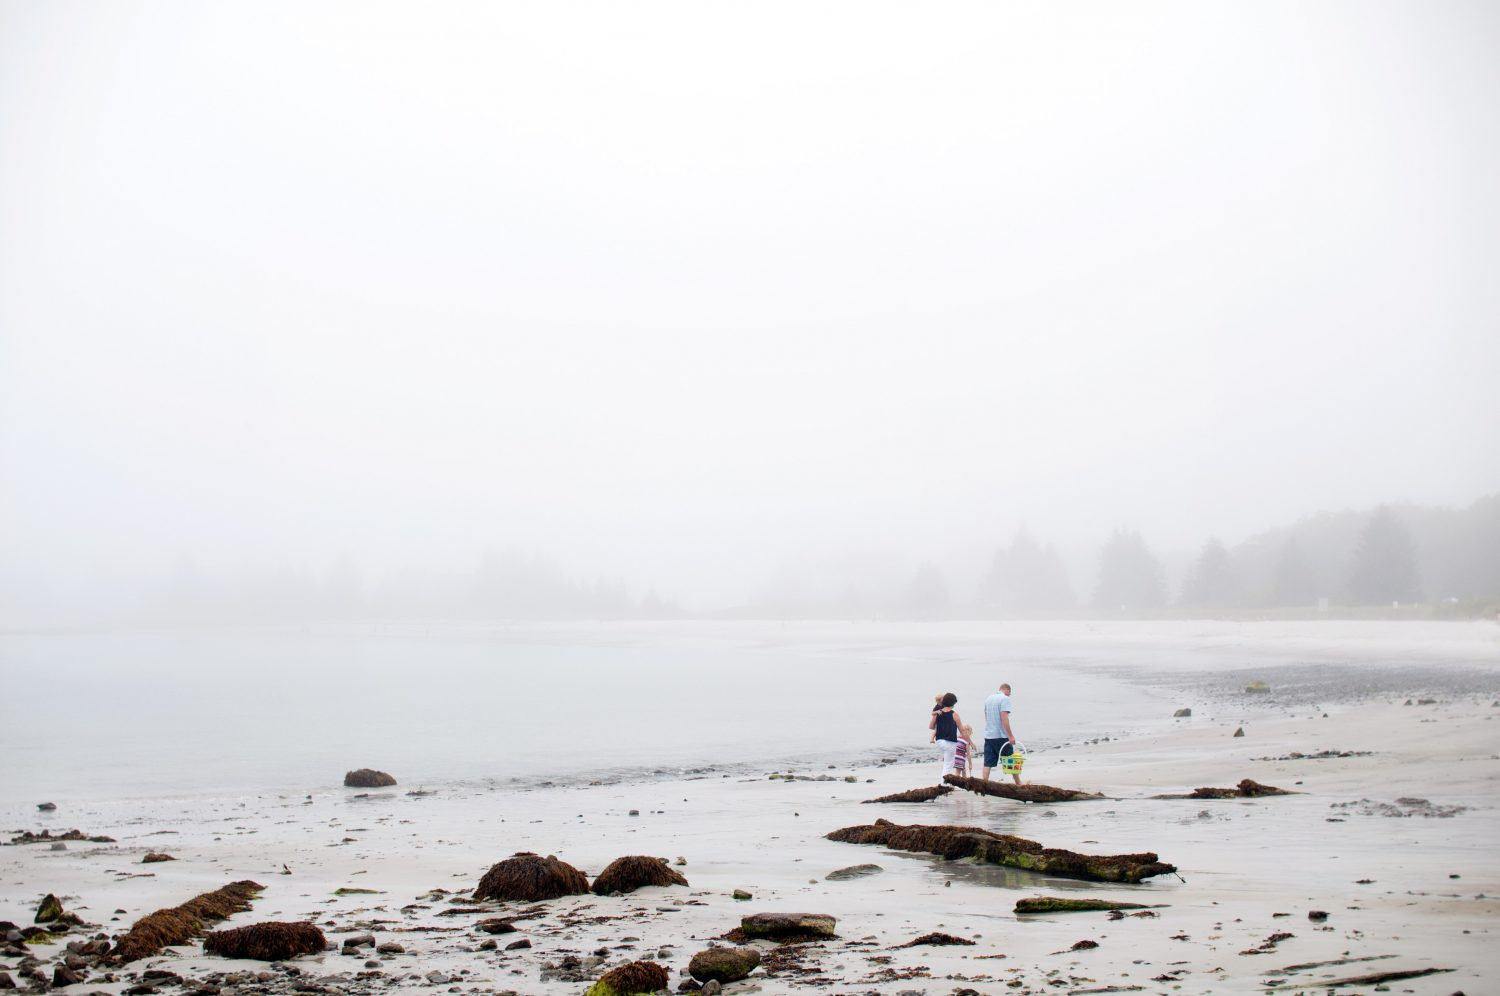 Family_walking-together_along_the_foggy_beach_in_Maind